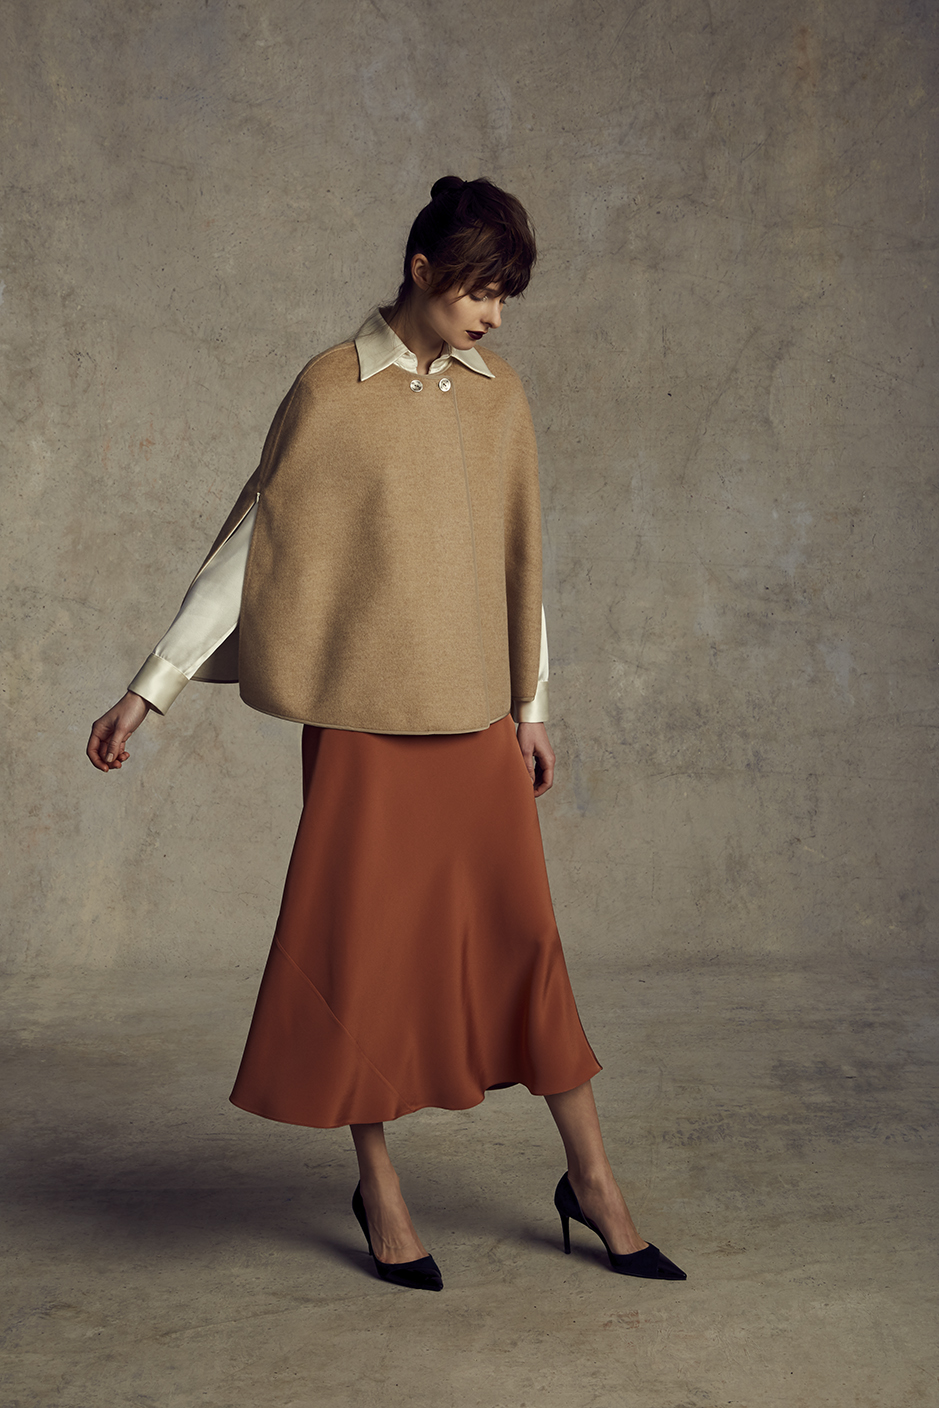 MIROSLAVA REVERSIBLE CAPE   DOUBLE FACE CASHMERE      JEREMY BLOUSE   CREPE BACK SILK SATIN      DAVID BIAS SKIRT   4-PLY SILK CREPE      Contact for inquiry